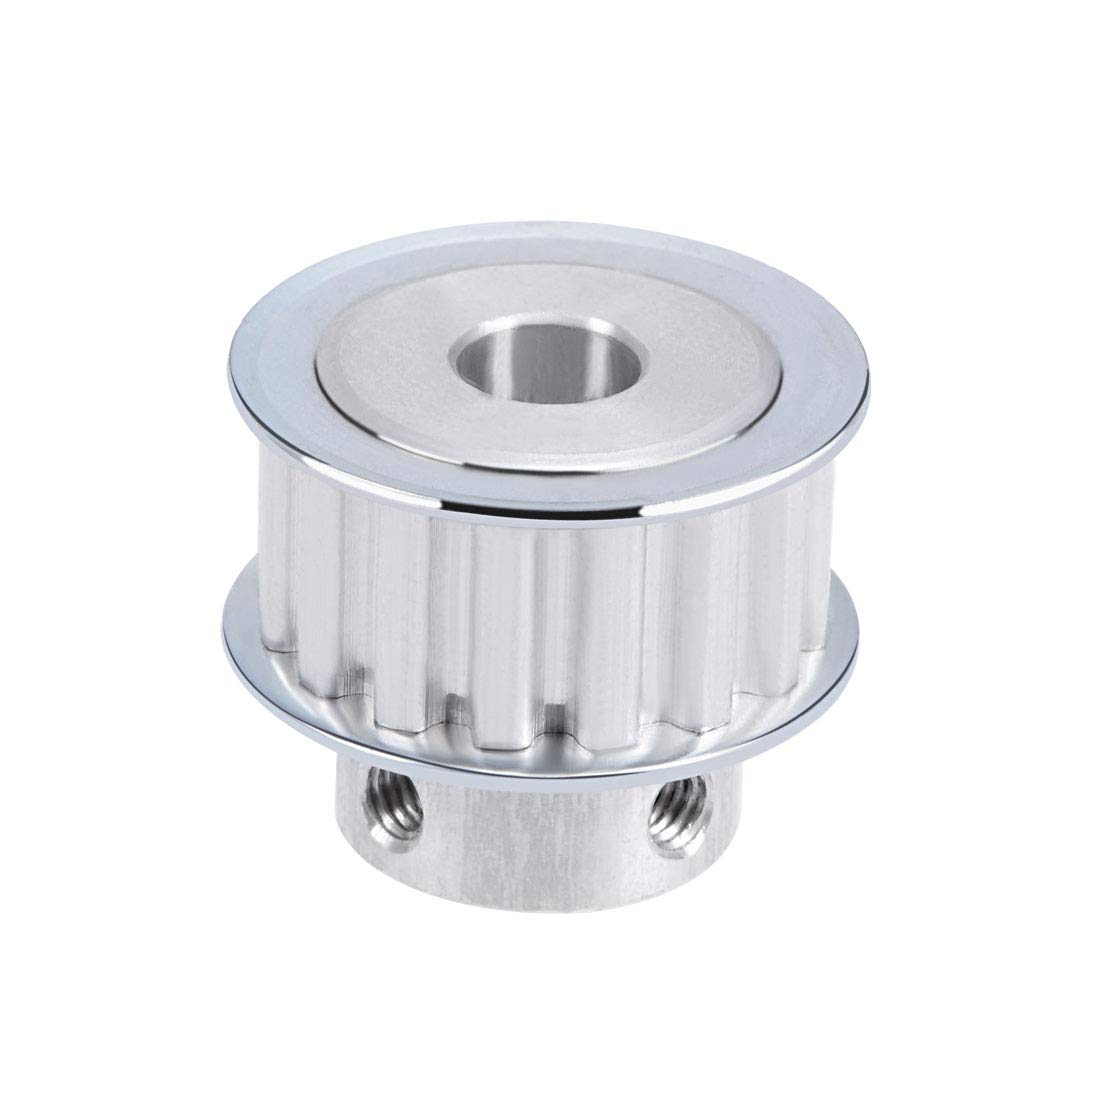 uxcell Aluminum XL 16 Teeth 8mm Bore Timing Belt Pulley Flange Synchronous Wheel for 10mm Belt 3D Printer CNC